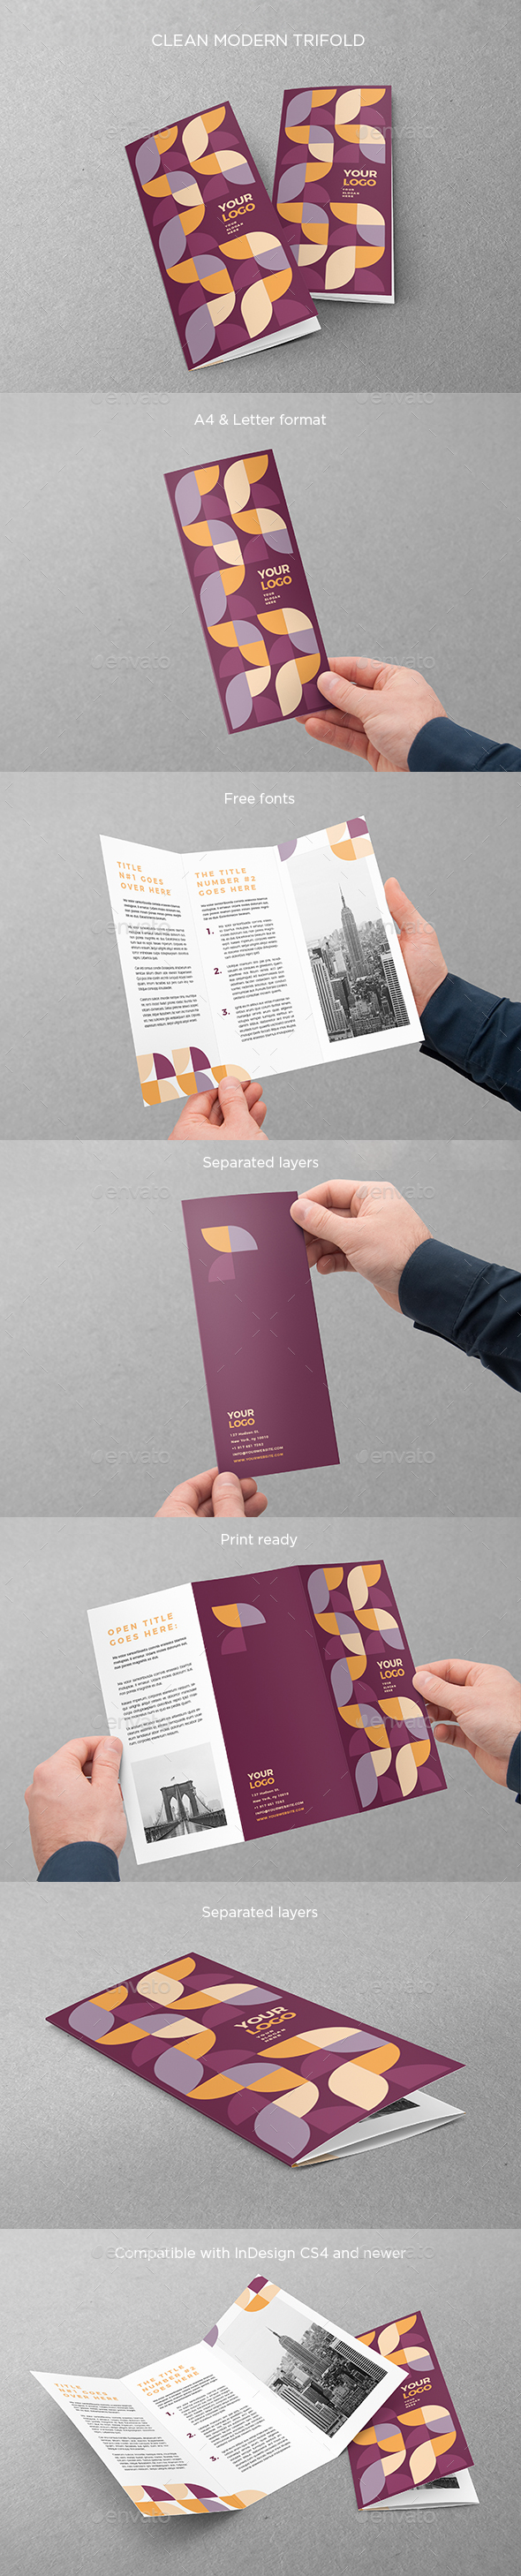 Clean Modern Trifold - Brochures Print Templates